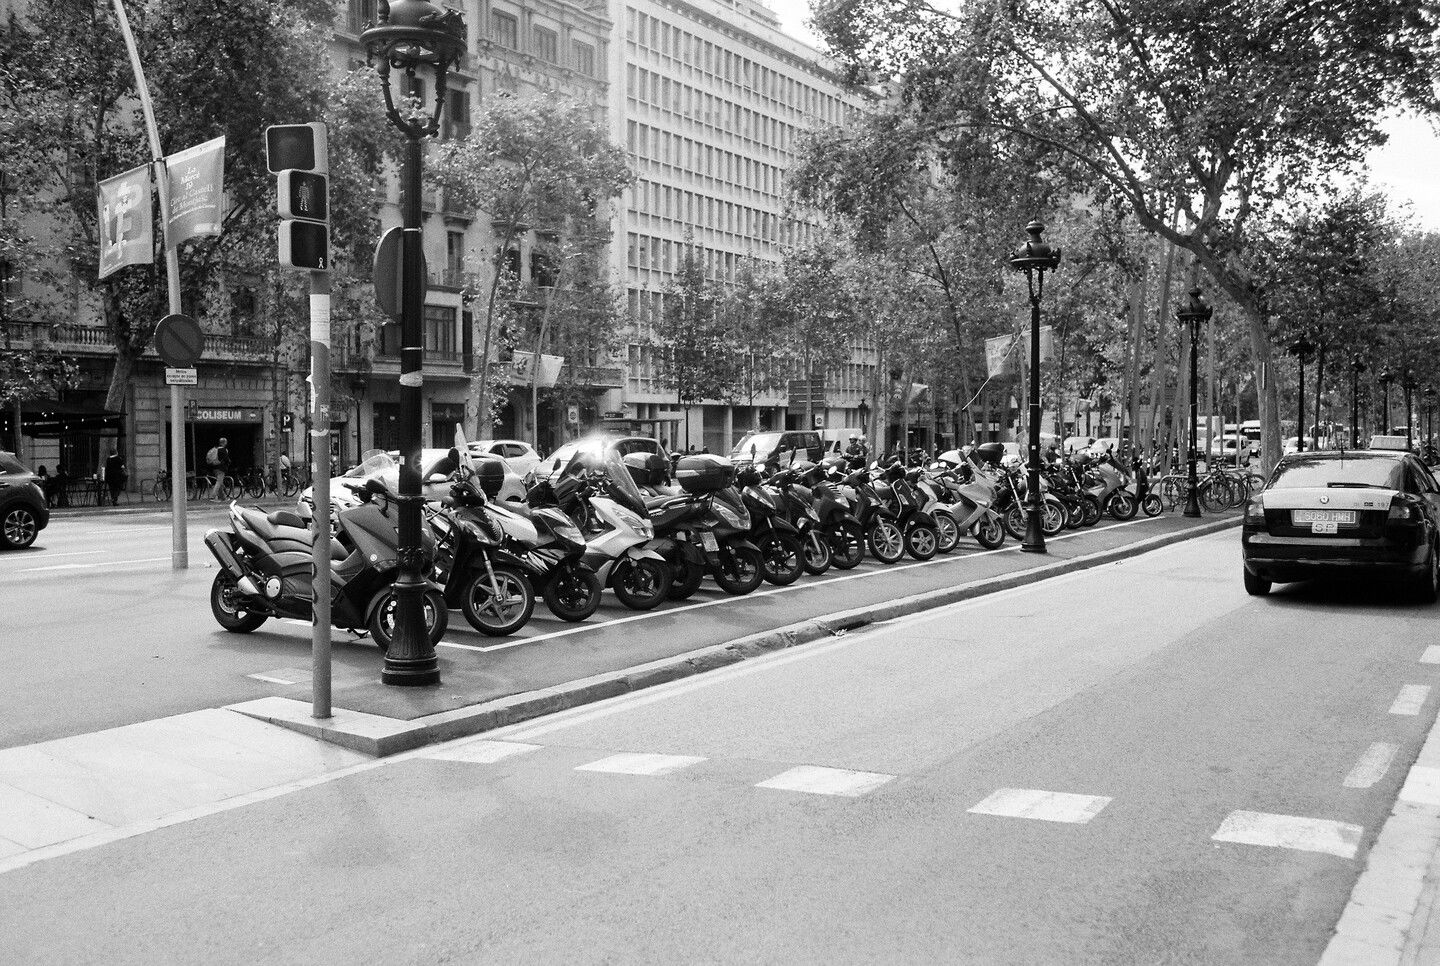 Sep 22, 2019 - Barcelona in Black and White: 8